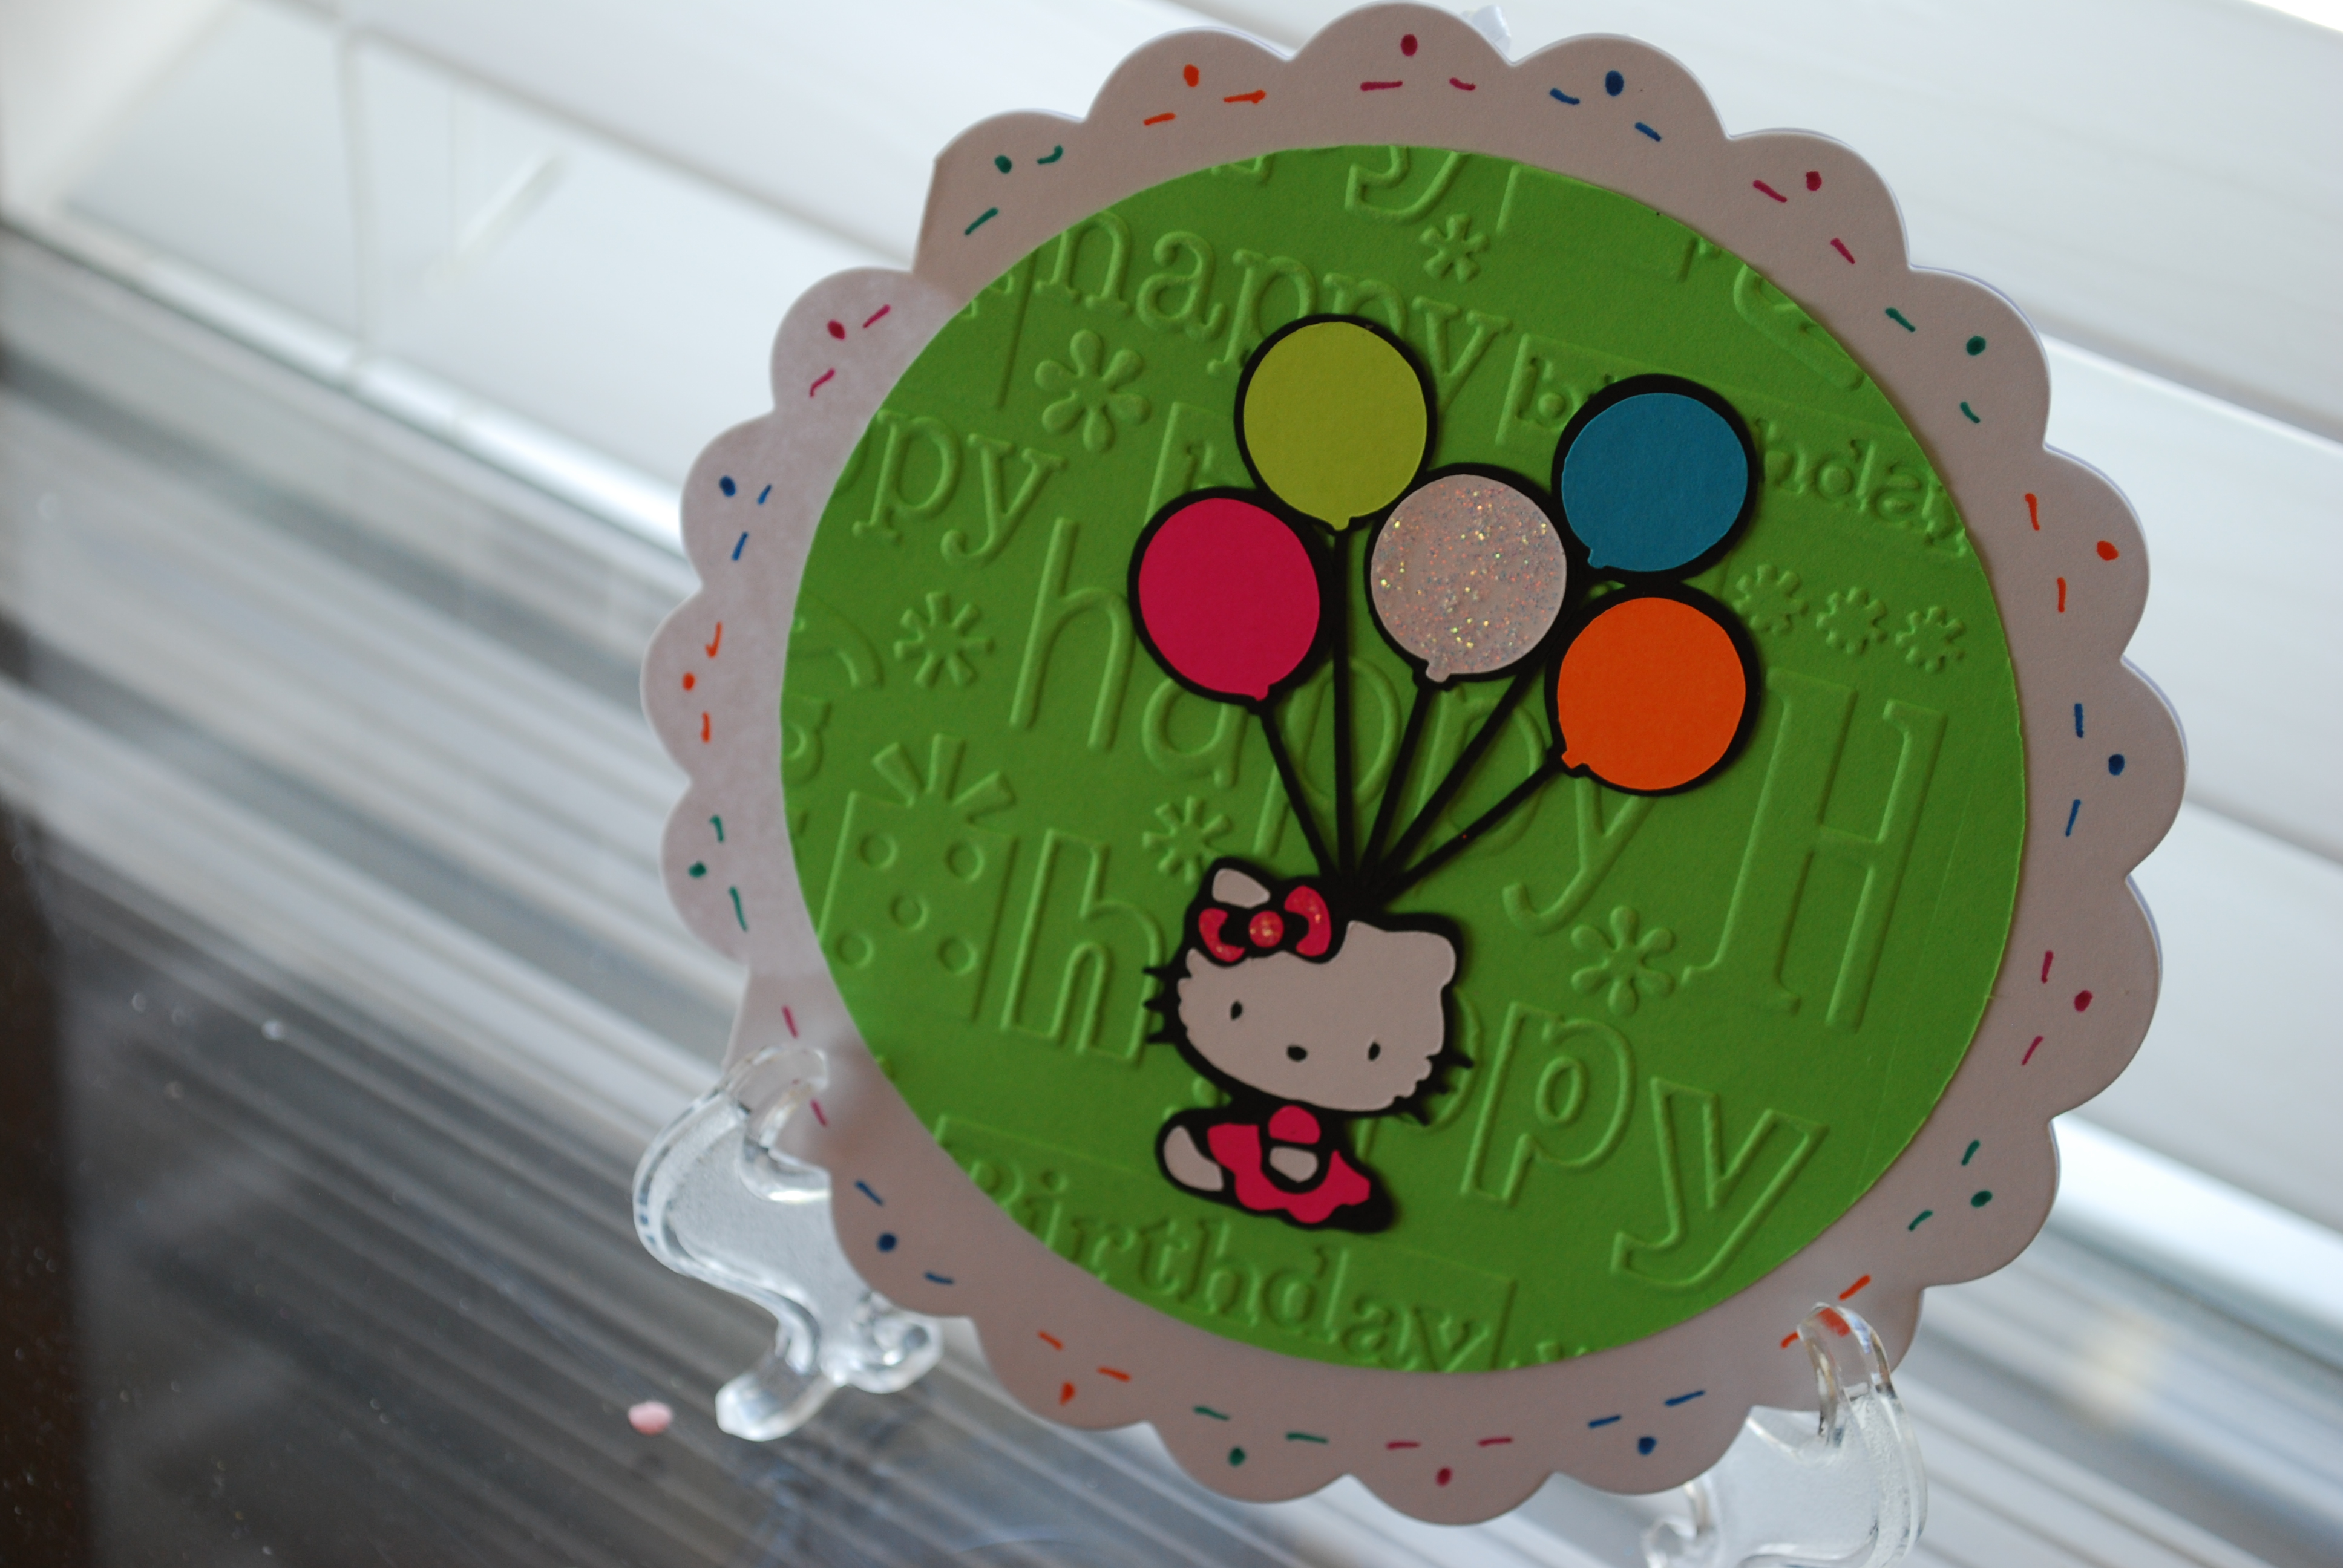 Cricut cartridge hello kitty greetings a piece of lifes pie my four year old is a huge hello kitty fan back in january i went on the hunt to buy the hello kitty cricut cartridge only to find out that it was retired m4hsunfo